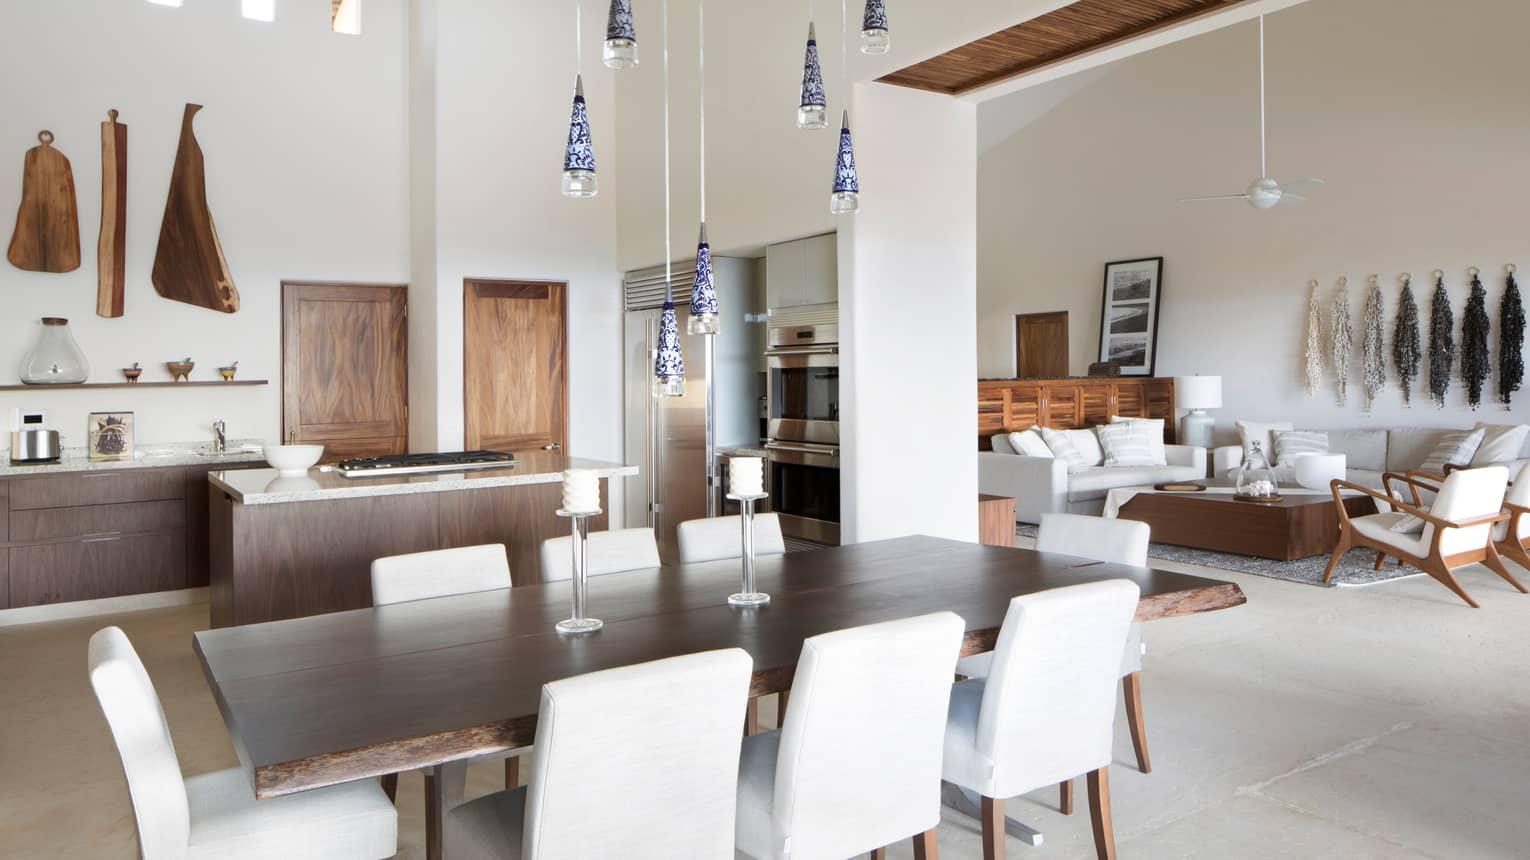 White dining chairs around long wood table under glass lights, modern kitchen